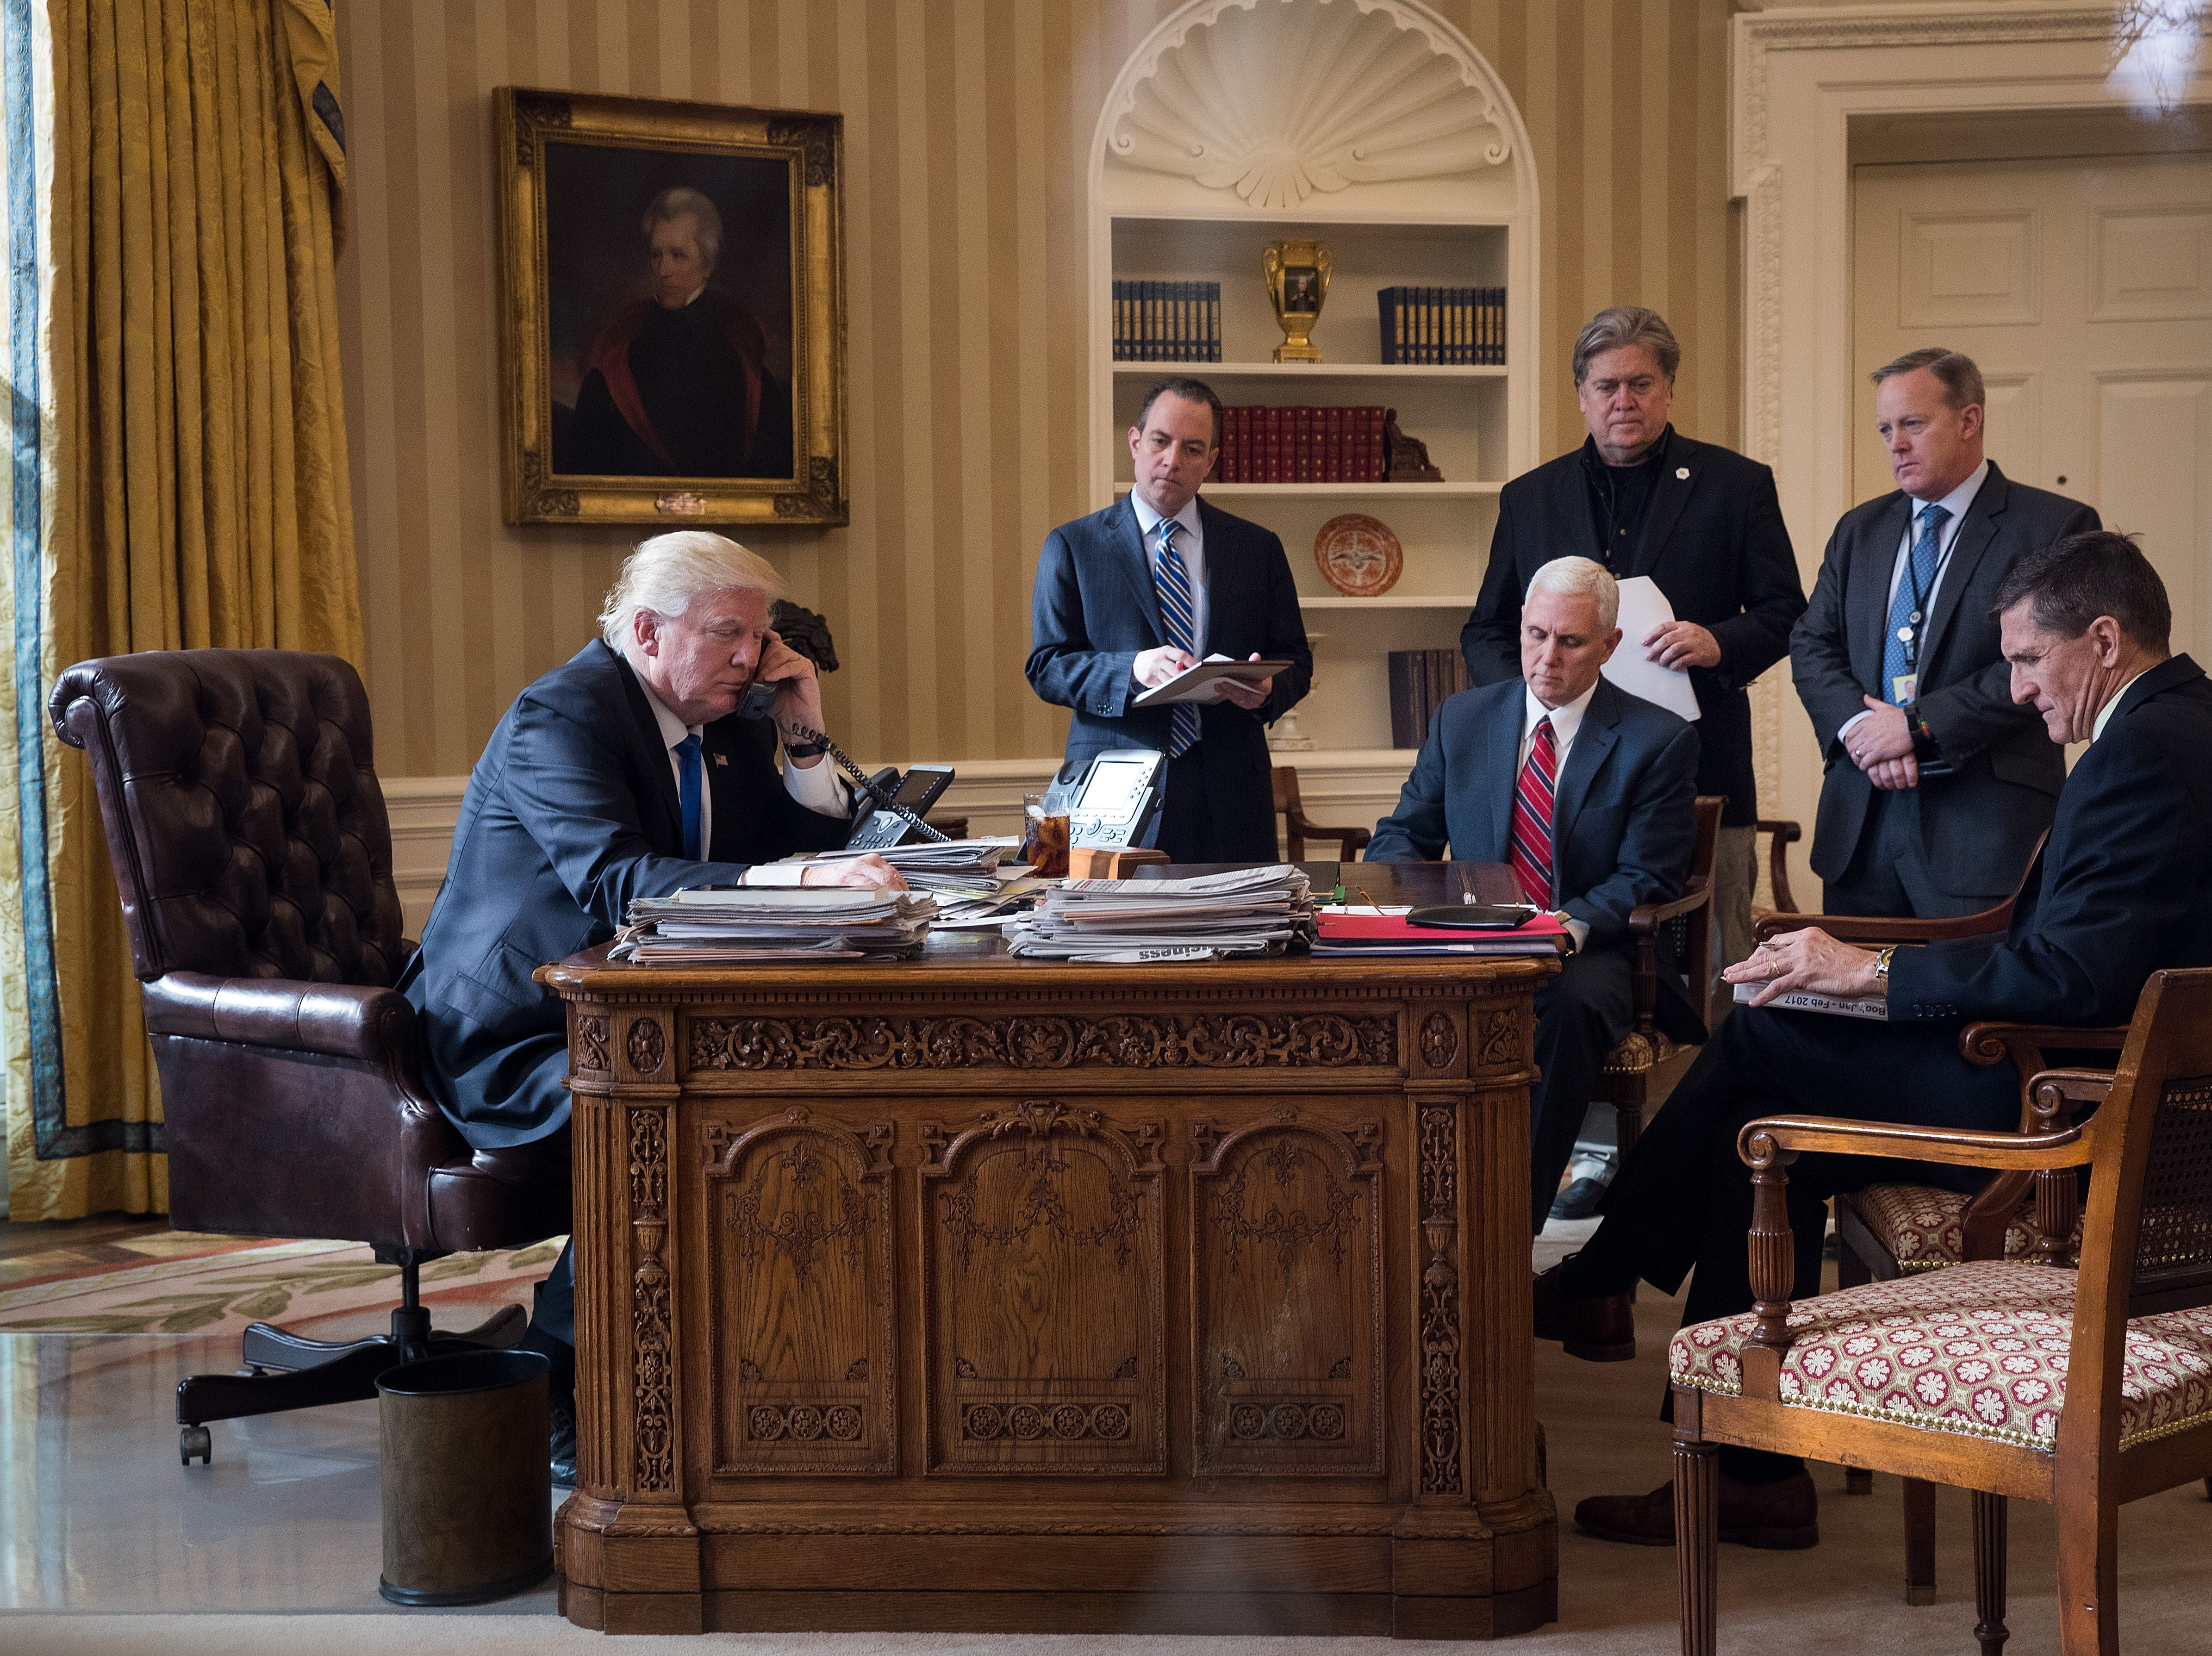 President Donald Trump speaks on the phone with Russian President Vladimir Putin in the Oval Office of the White House, Jan. 28, 2017 in Washington, DC. Also pictured, from left, White House Chief of Staff Reince Priebus, Vice President Mike Pence, White House Chief Strategist Steve Bannon, Press Secretary Sean Spicer and National Security Advisor Michael Flynn. On Saturday, President Trump is making several phone calls with world leaders from Japan, Germany, Russia, France and Australia.